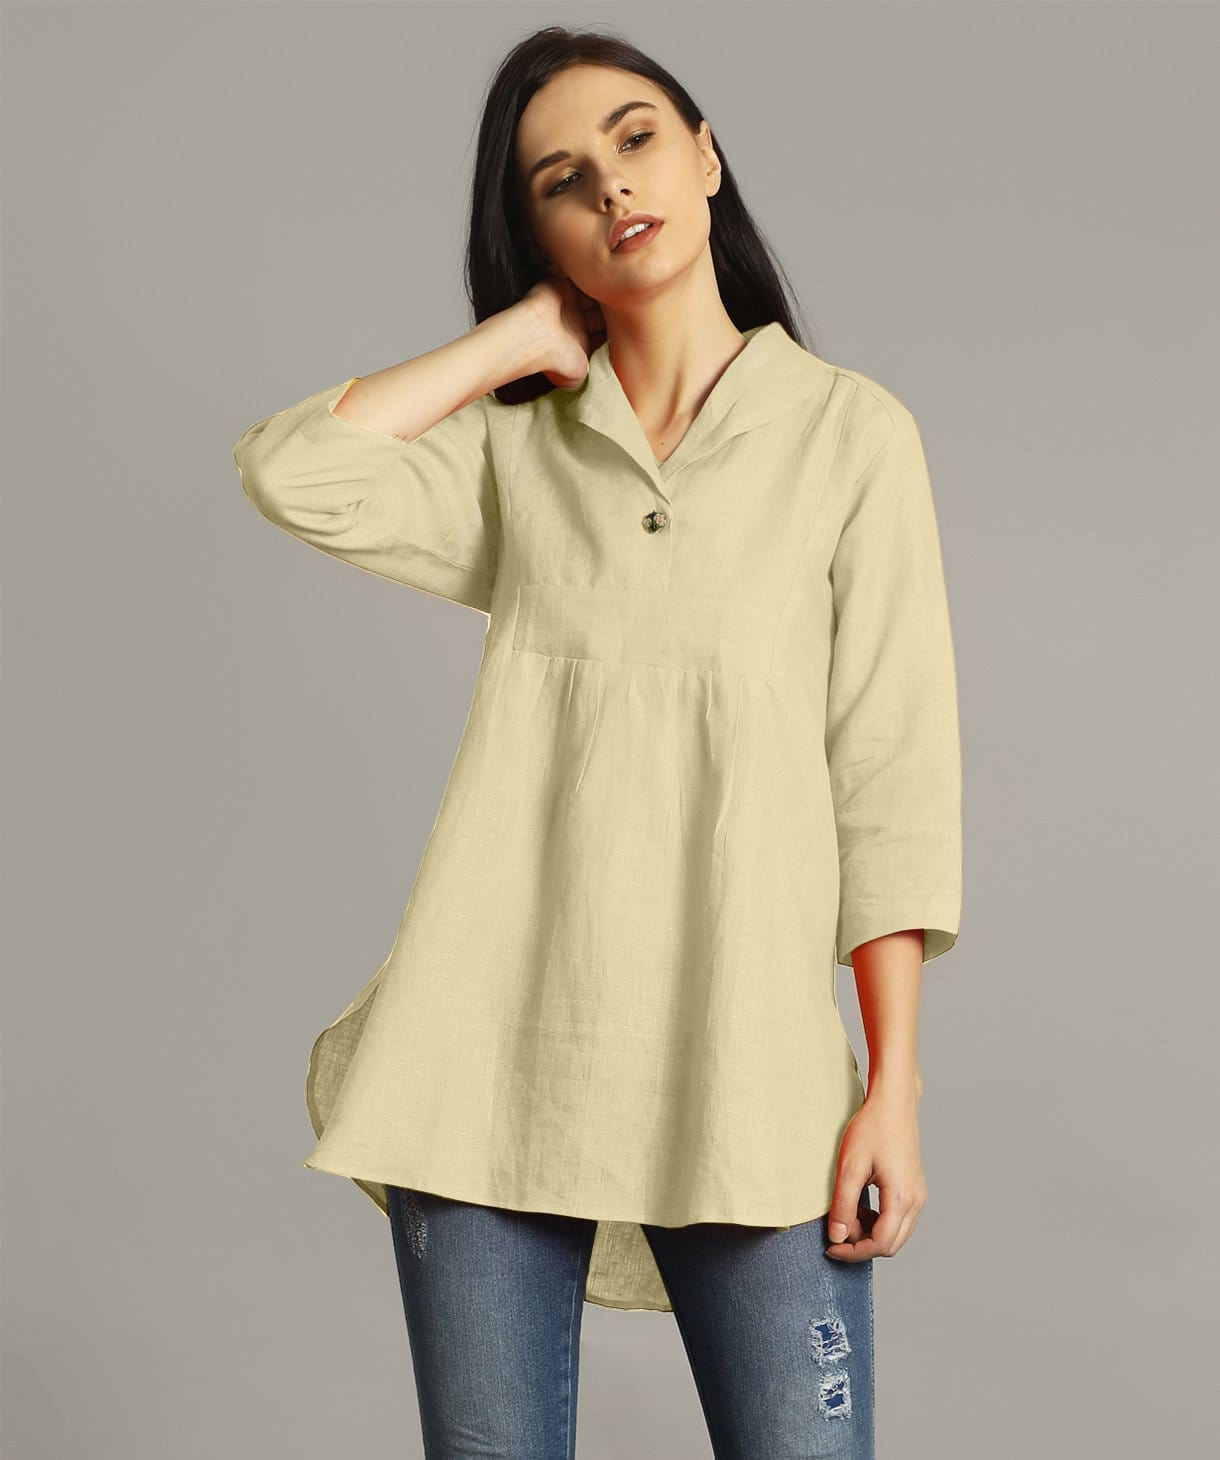 Off White High-Low Handloom Tunic - Uptownie